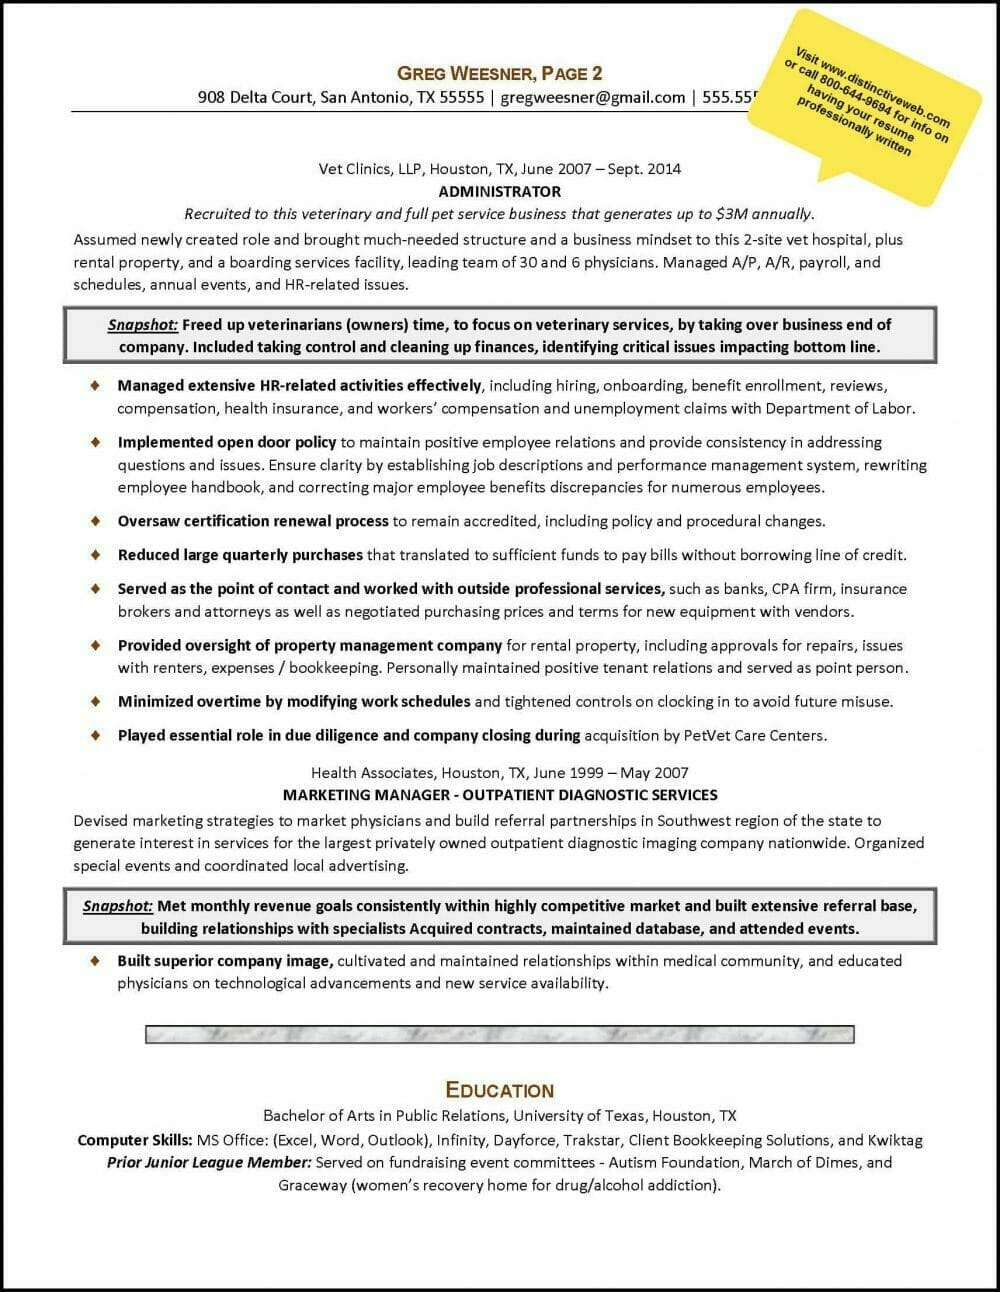 career change resume for new industry distinctive services changing to fit the job best Resume Changing Resume To Fit The Job